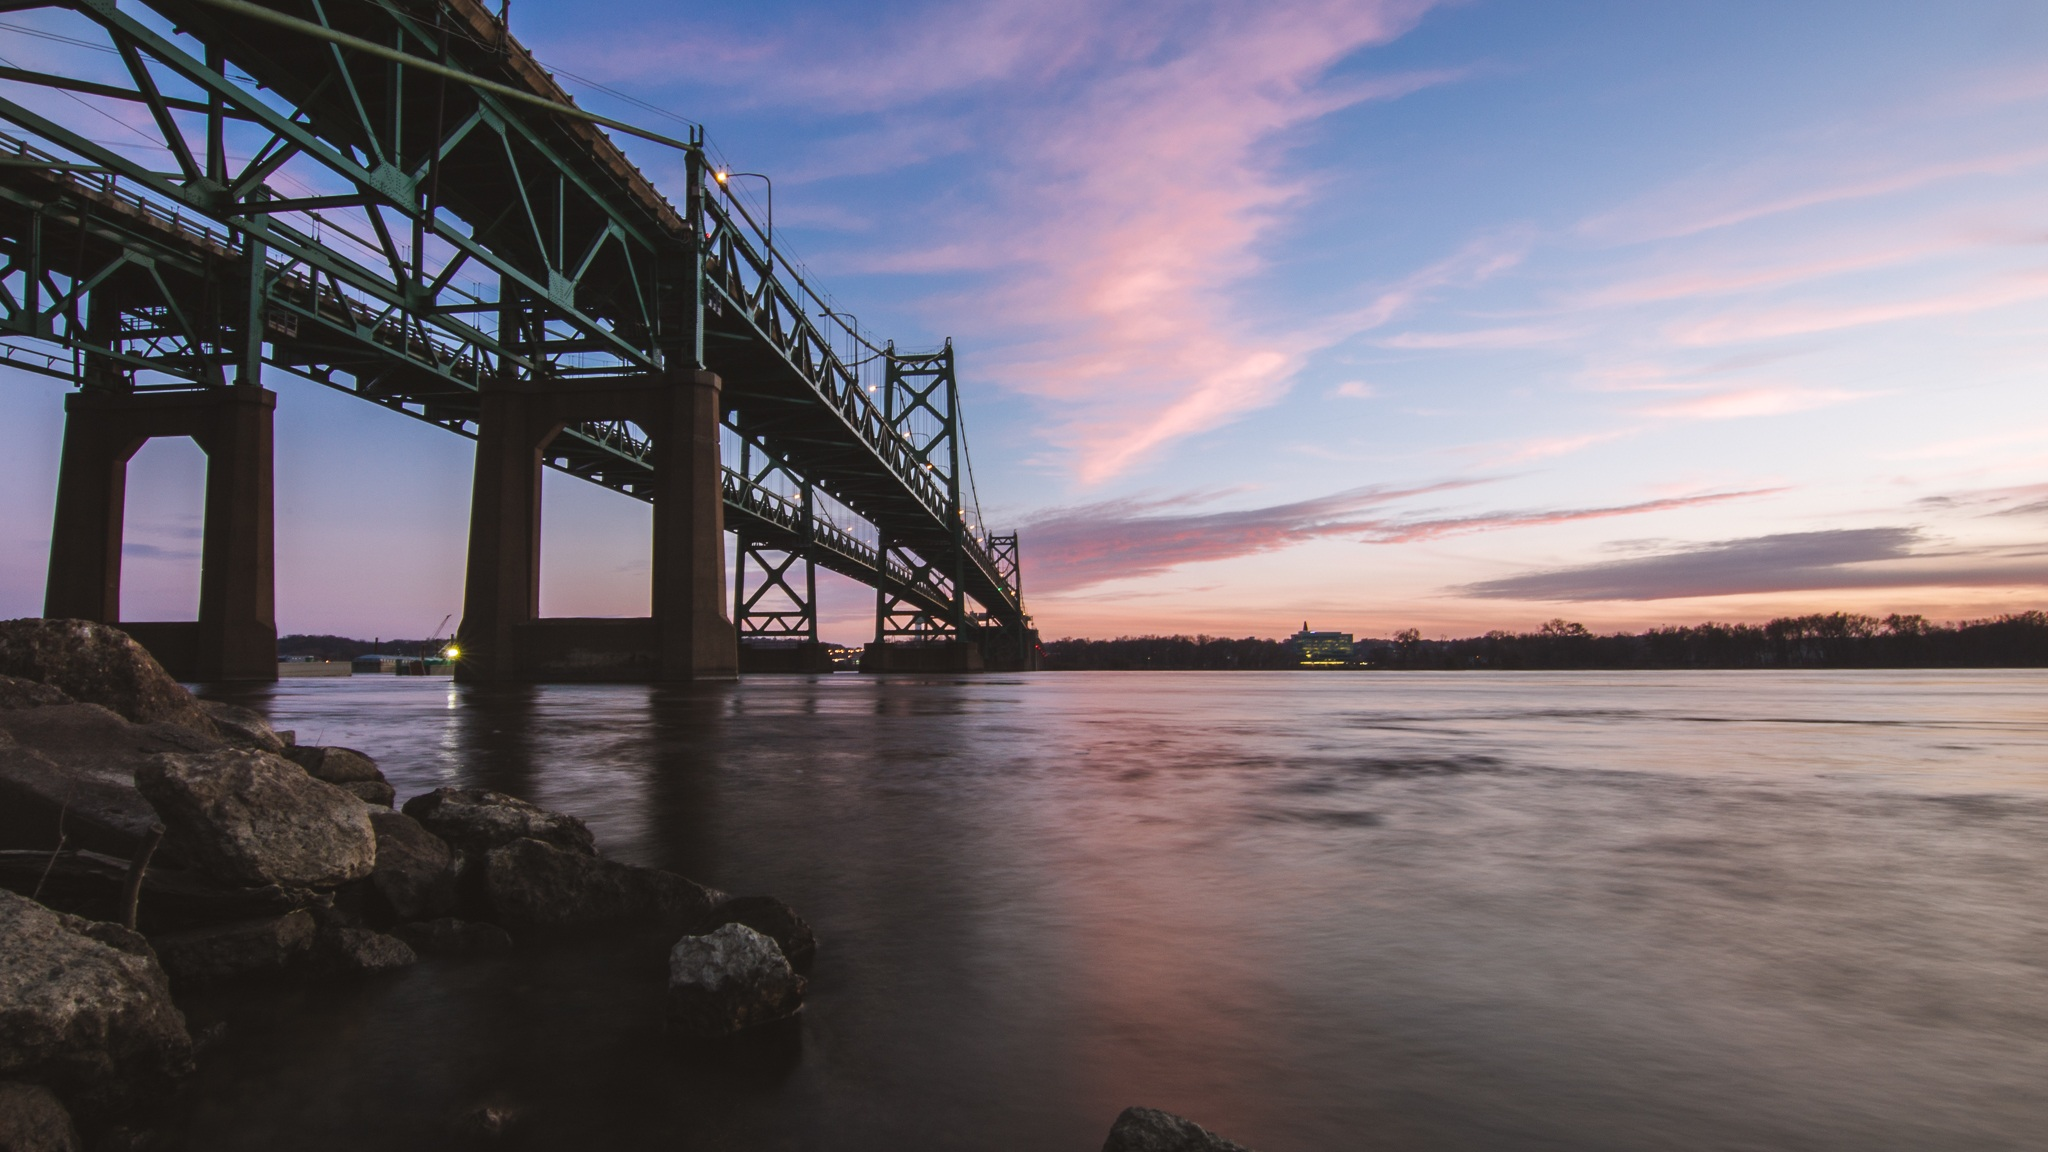 Looking for things to do in the Quad Cities? Look no further.